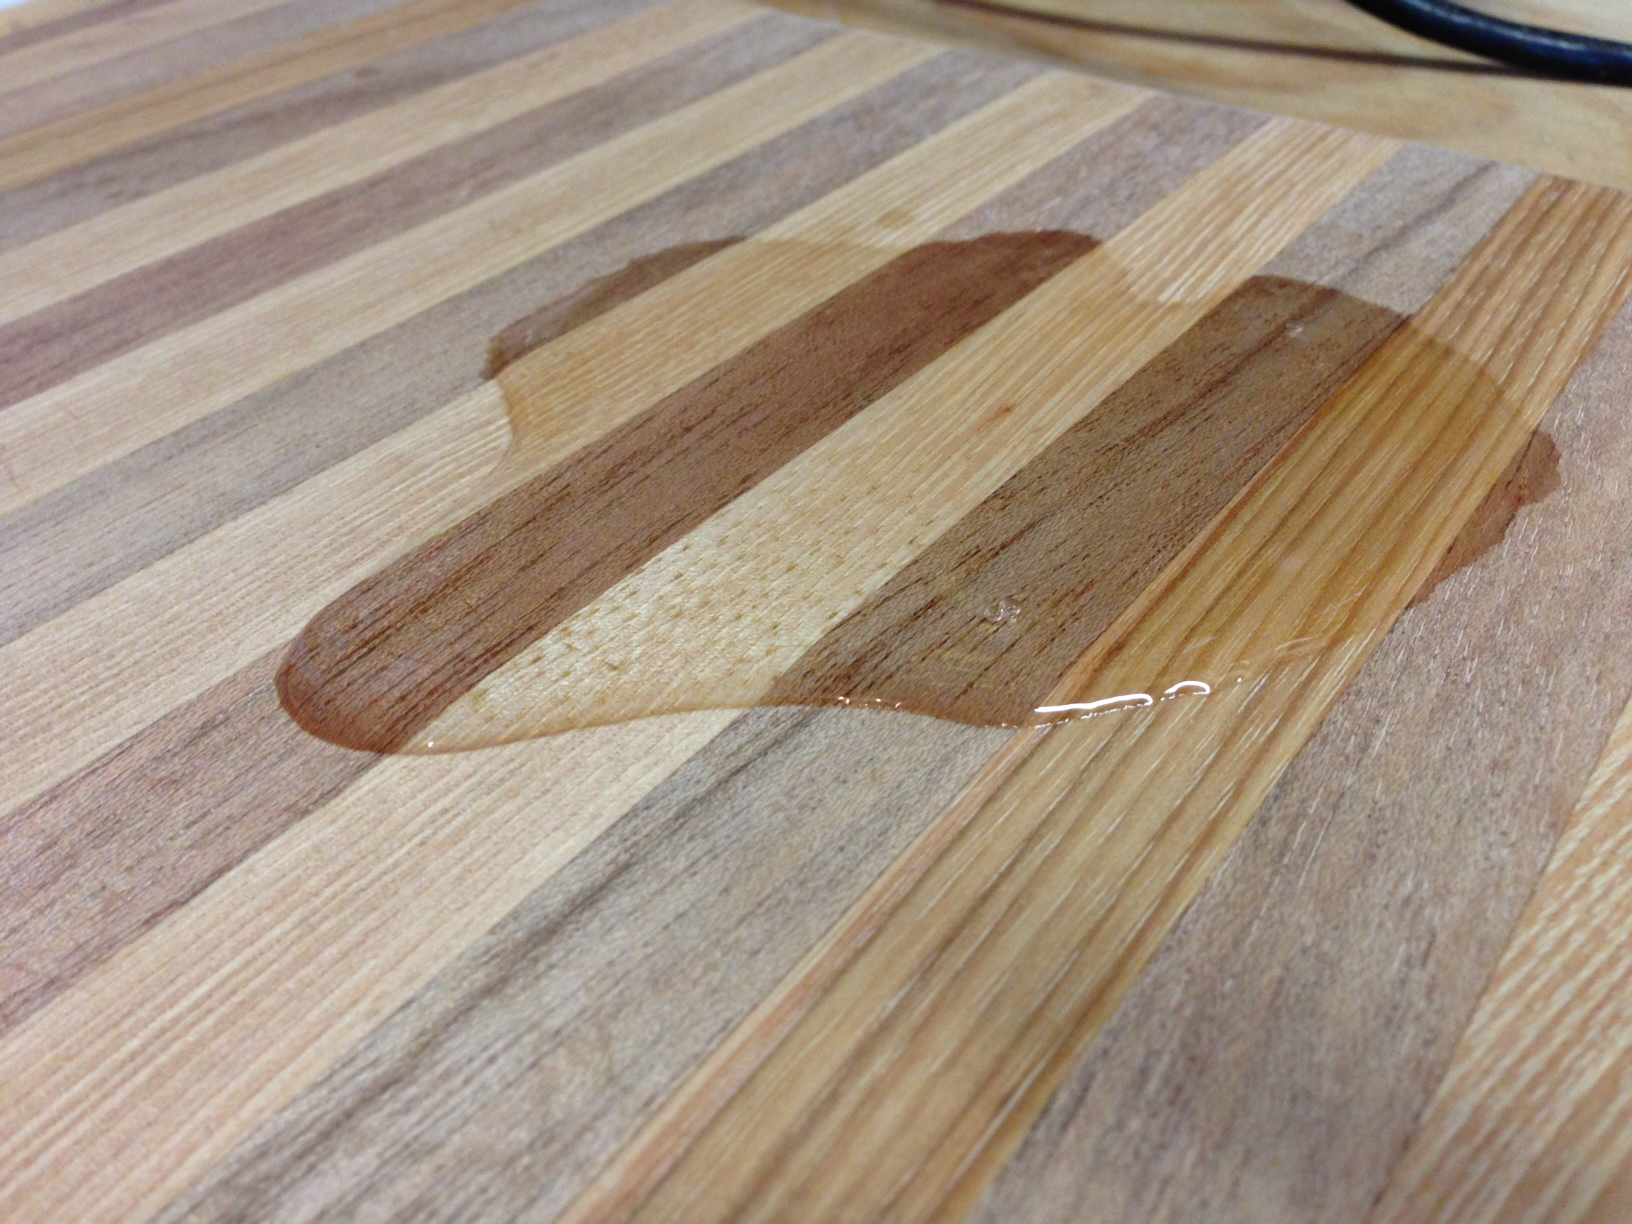 diy butcher block cutting board tutorial the rodimels